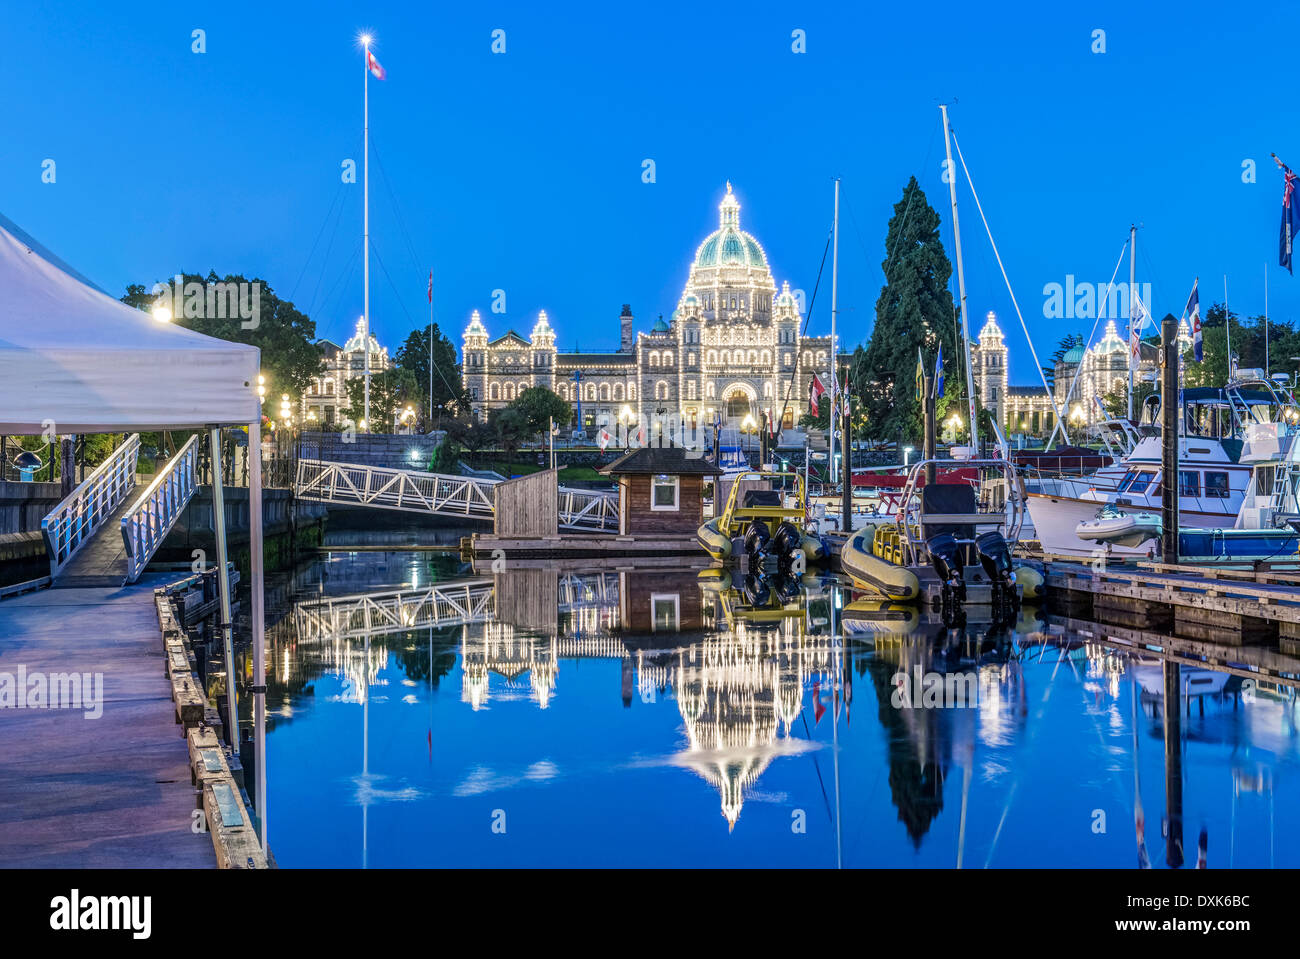 Édifices du Parlement et le port illuminé de l'aube, Victoria, Colombie-Britannique, Canada Photo Stock